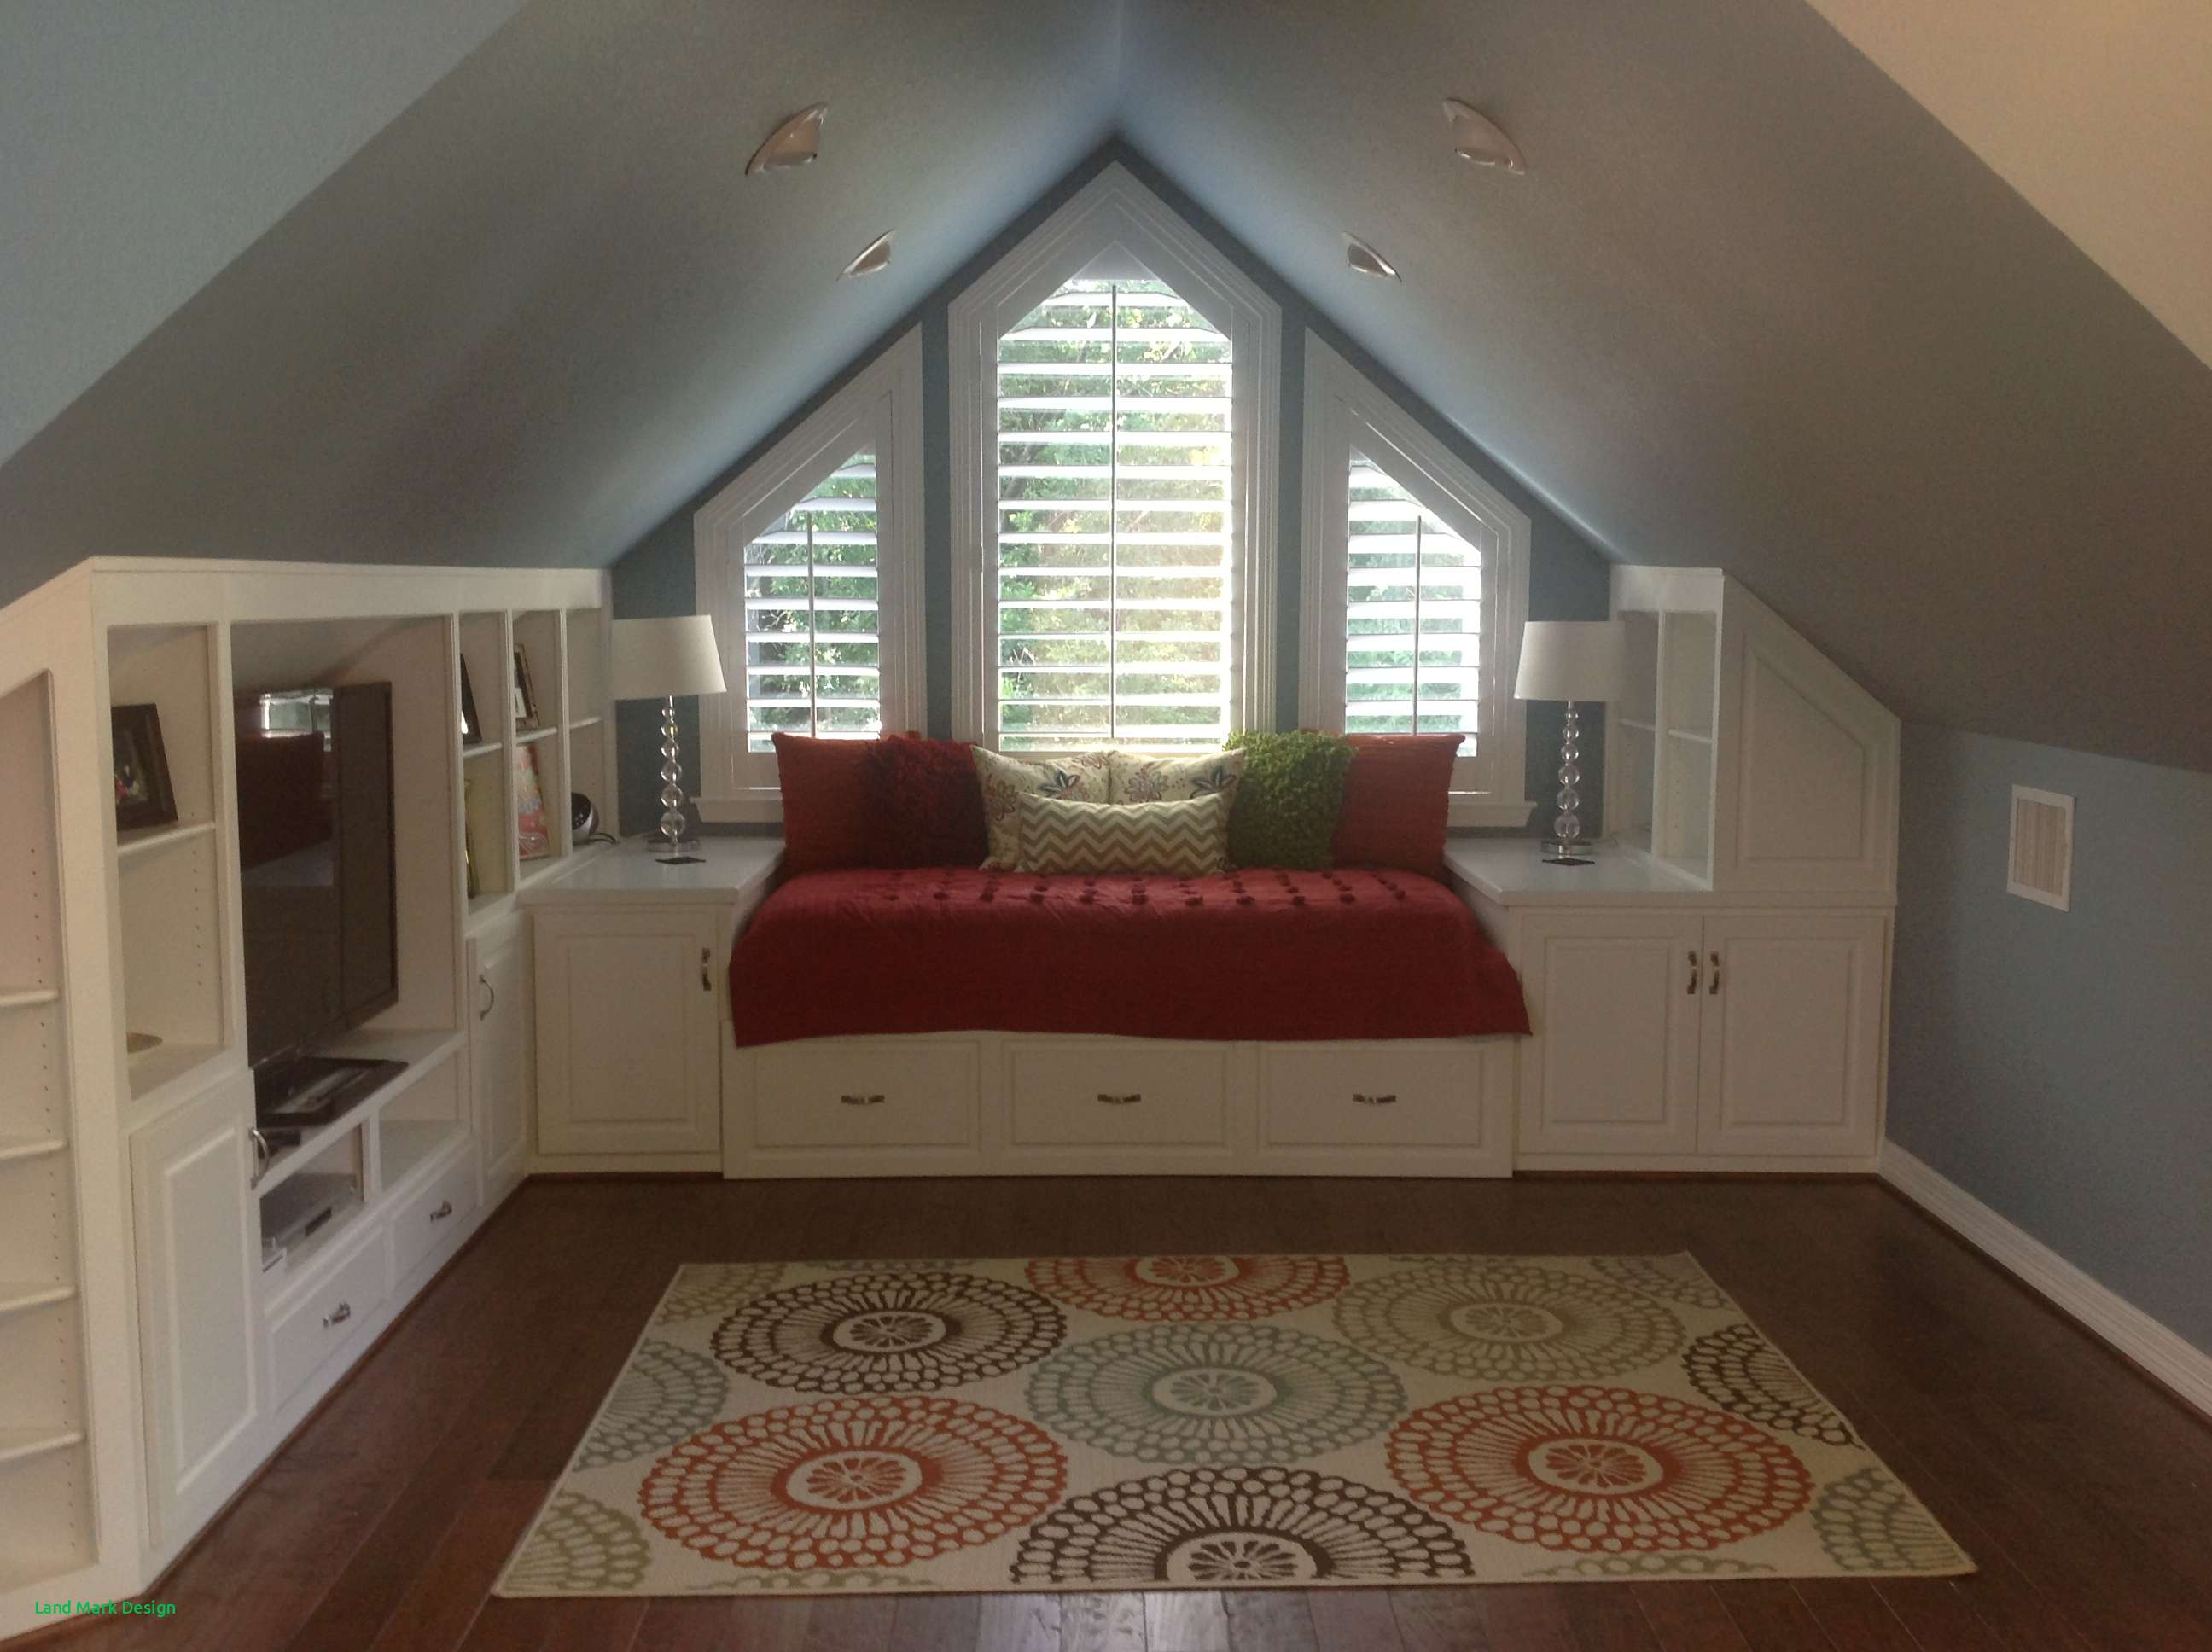 Exquisite Attic Bedrooms With Slanted Walls Of Feng Shui ...